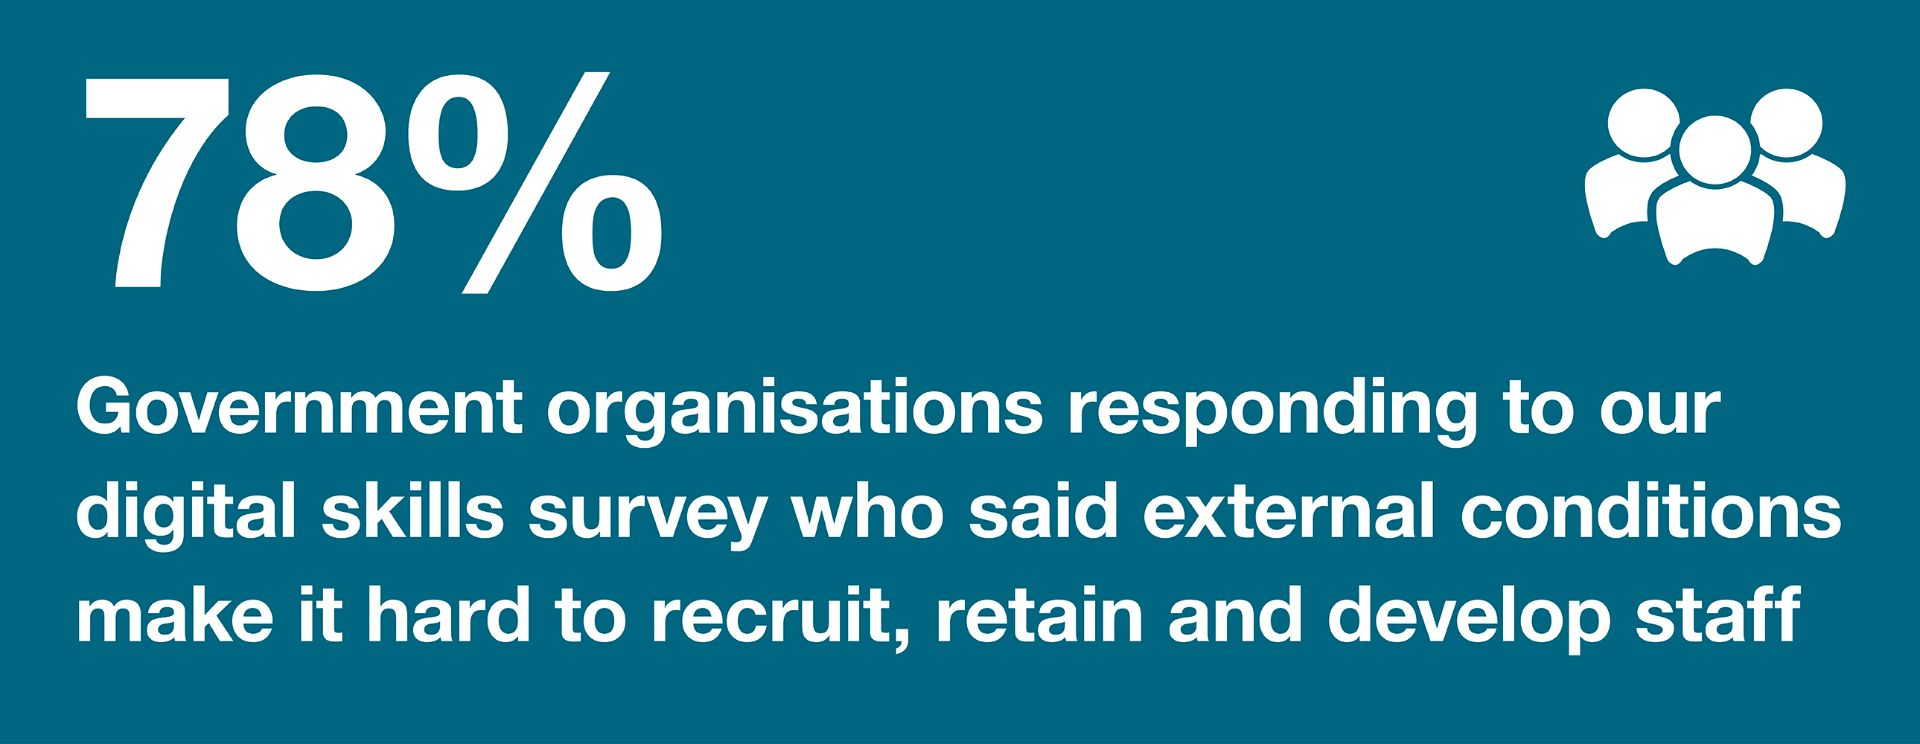 Infographic: 78%: government organisations responding to our digital skills survey who said external conditions made it hard to recruit, retain and develop staff